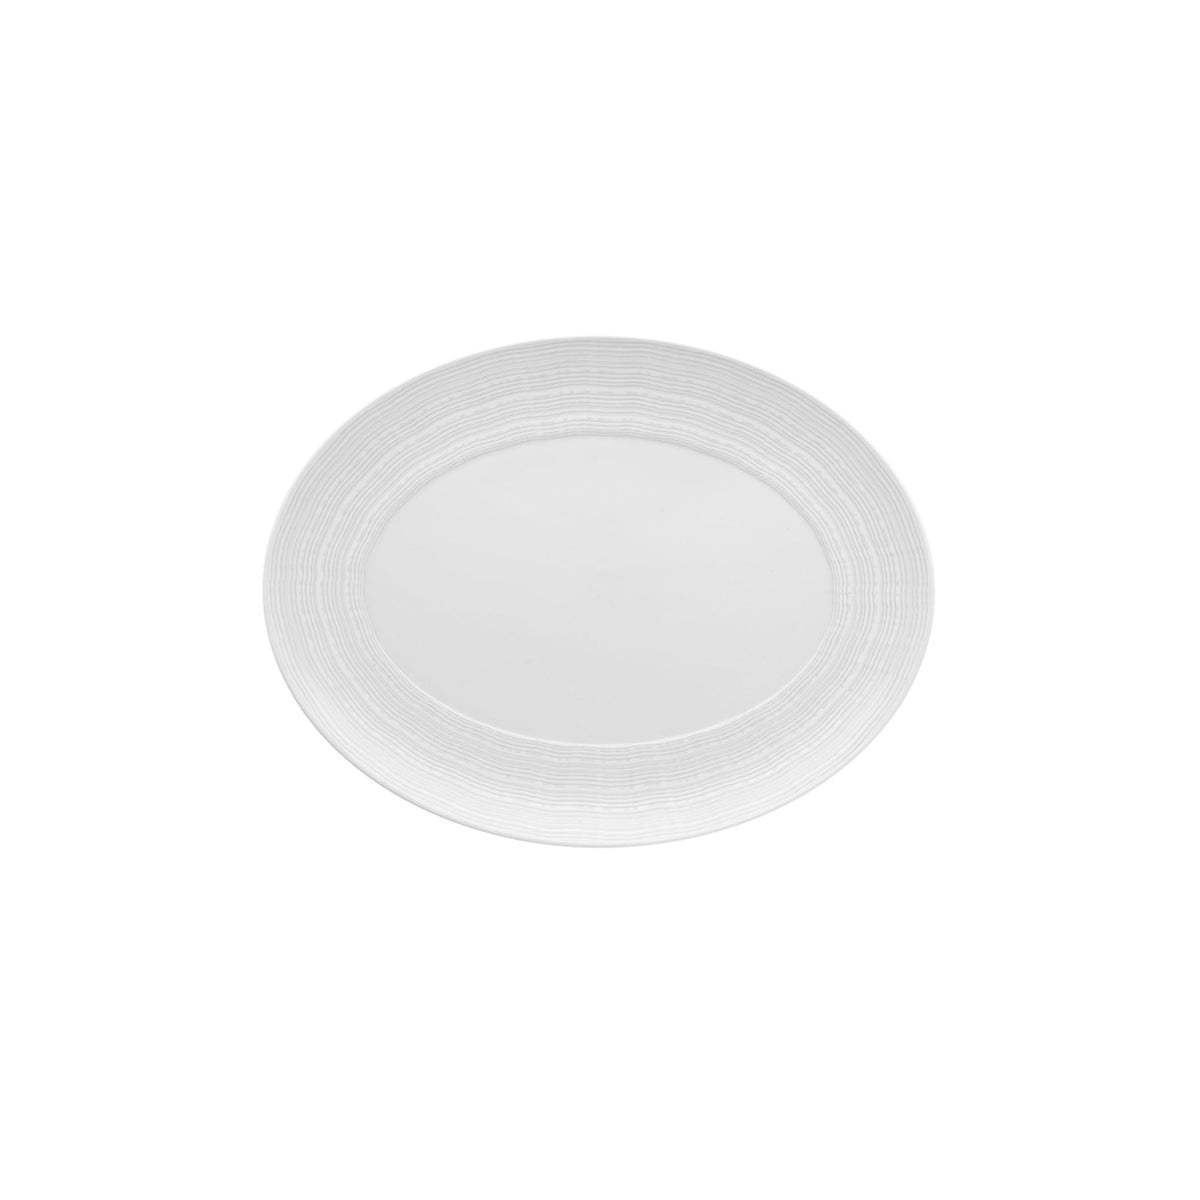 Mar Small Oval Platter